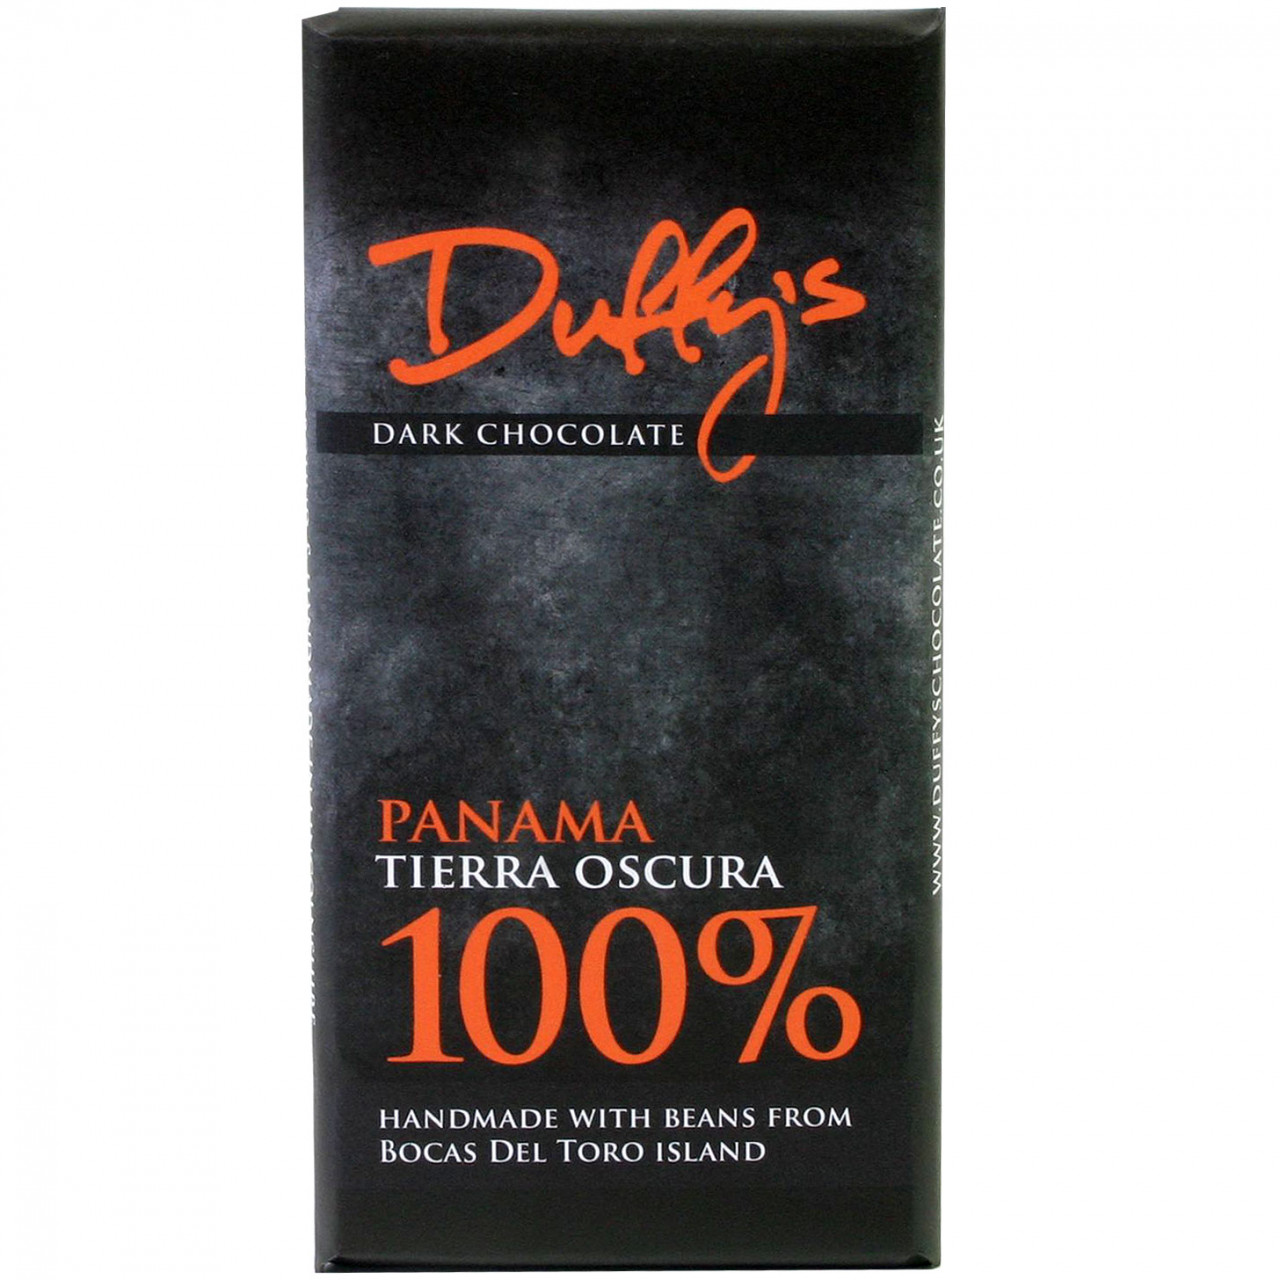 Panama Tierra Oscura, 100% Schokolade, Duffy's Chocolate, dark chocolate, chocolat noir, single origin, criollo, Venezuela - Bar of Chocolate, alcohol free Chocolate, gluten free chocolate, laktose free chocolate, lecithin free chocolate, milk protein free chocolate, nut free chocolate, palm oil free chocolate, soy free chocolate, sugar free chocolate, suitable for vegetarians, vegan-friendly, without artificial flavourings / additives, England, english chocolate - Chocolats-De-Luxe